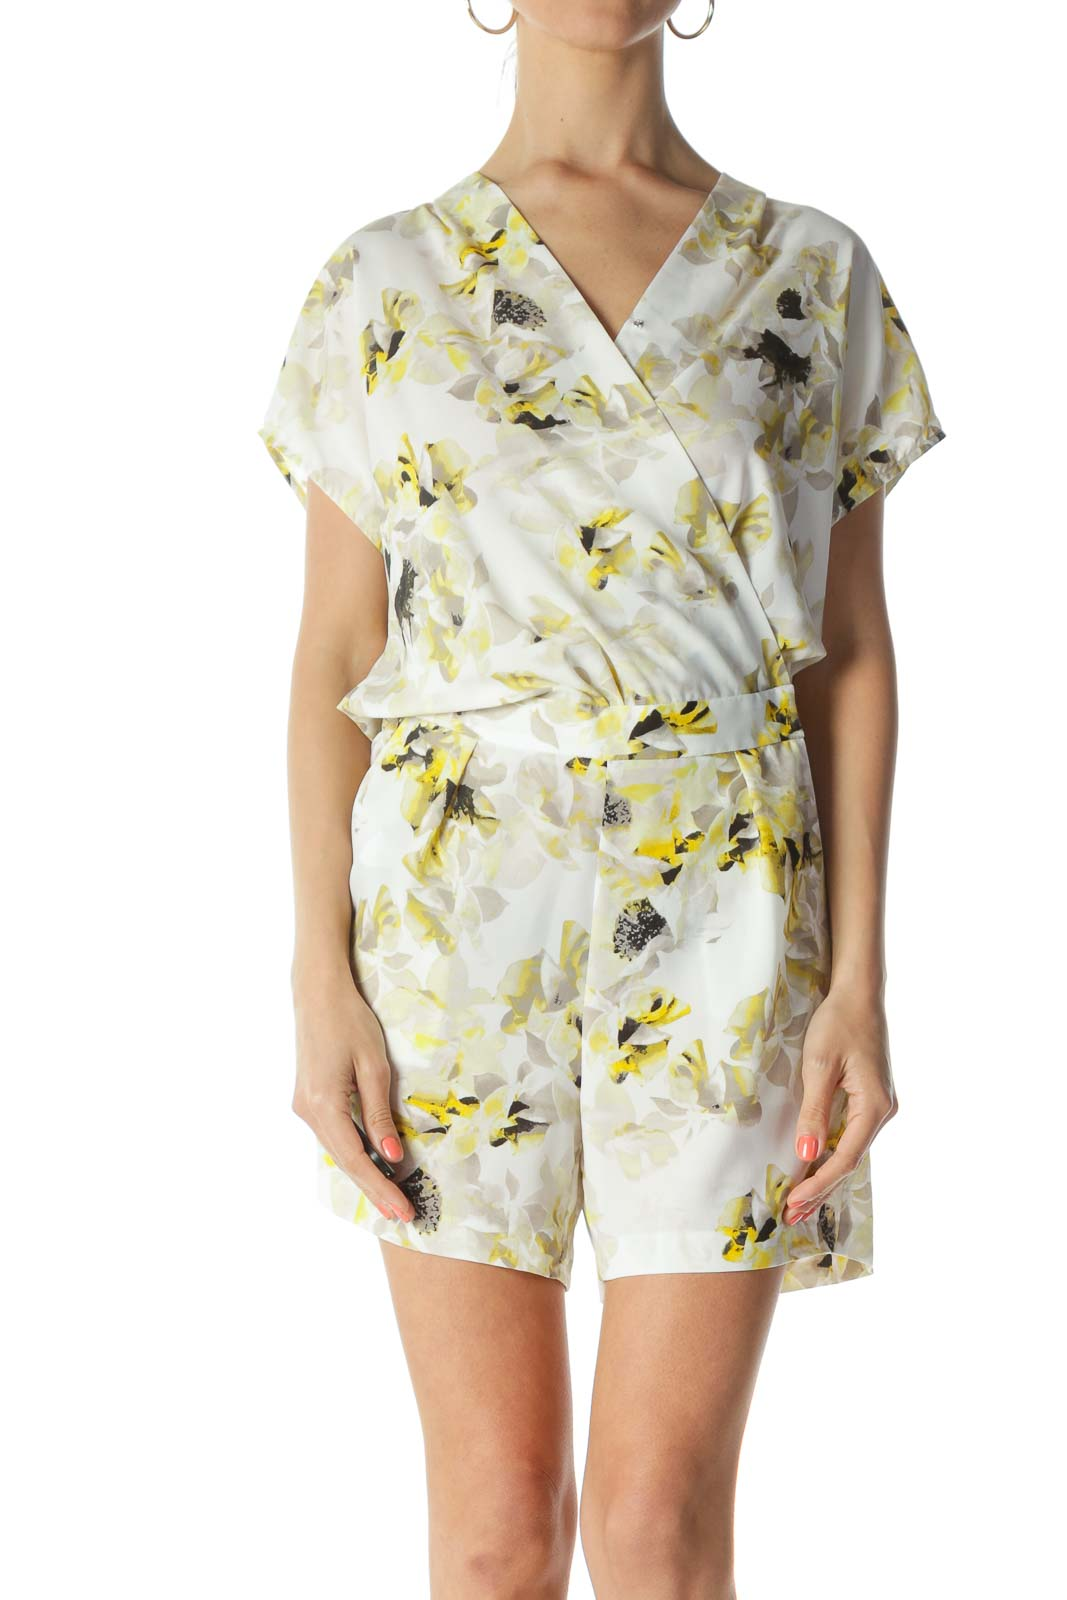 White/Yellow/Black Floral-Print Elastic-Waist Pocketed Romper Front